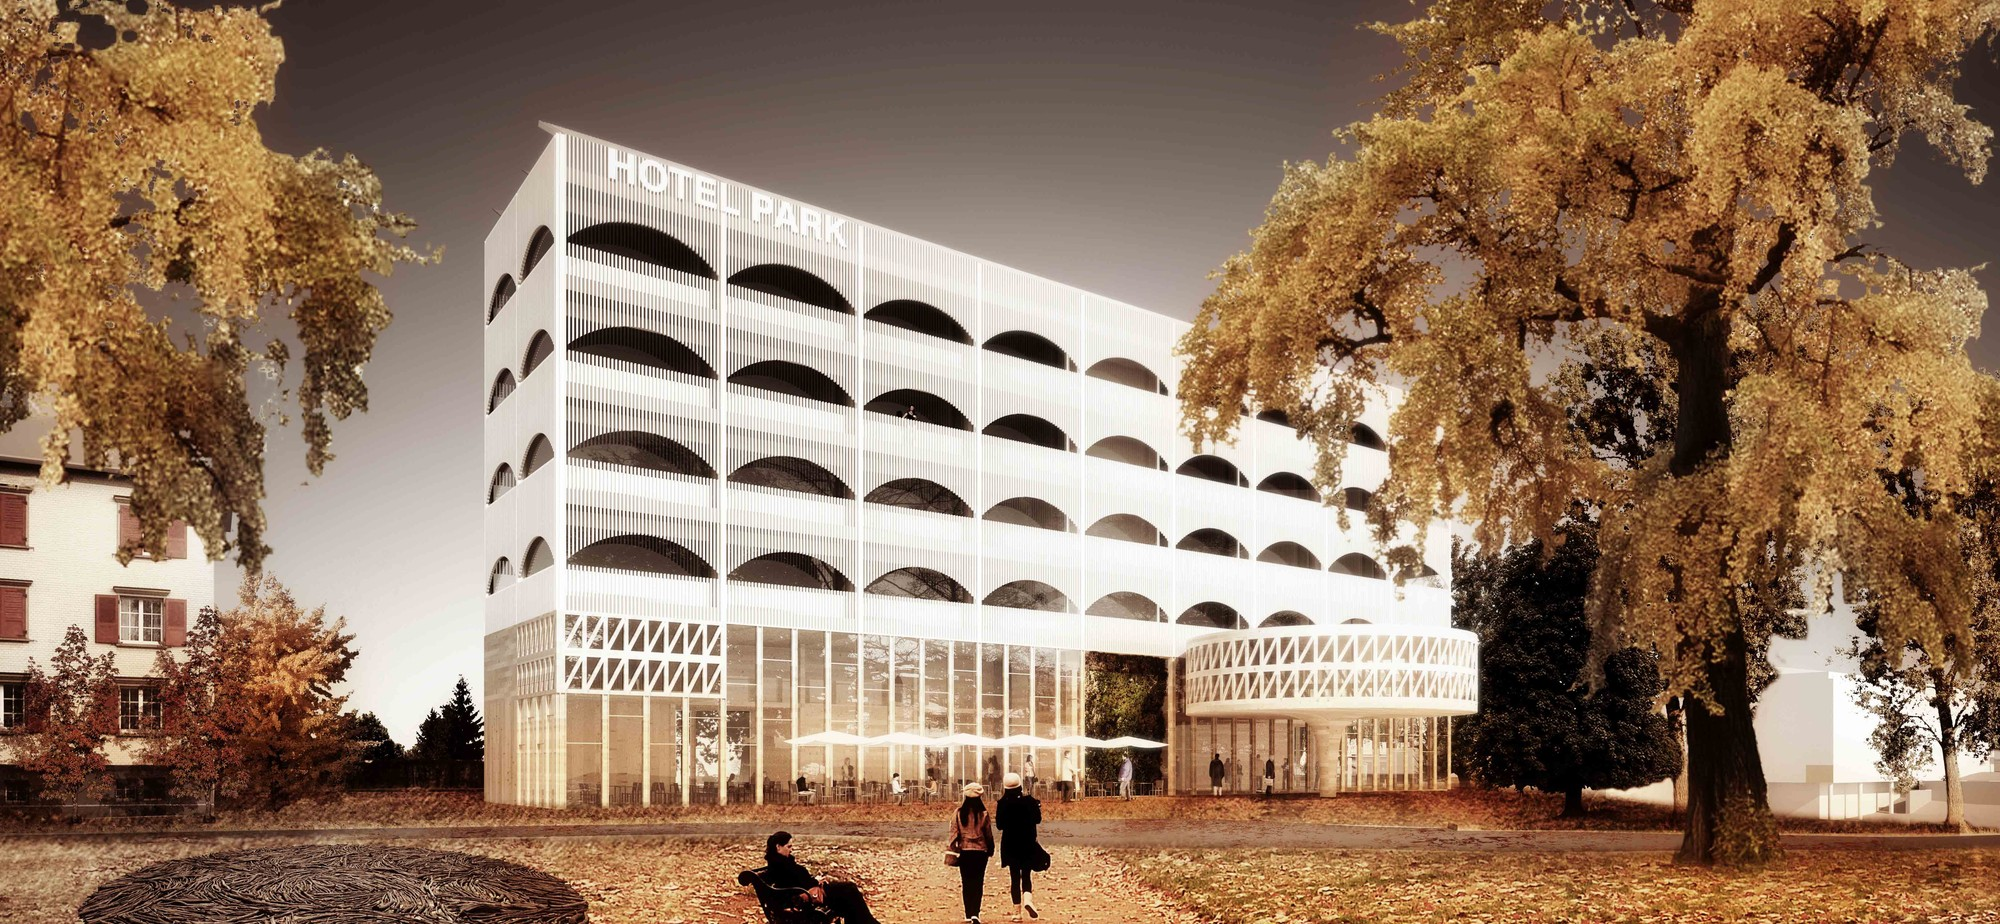 Hotel Park and Seeallee Heiden Competition Entry / Kubota & Bachmann Architects + Martinez, Courtesy of Kubota & Bachmann Architects + Martinez